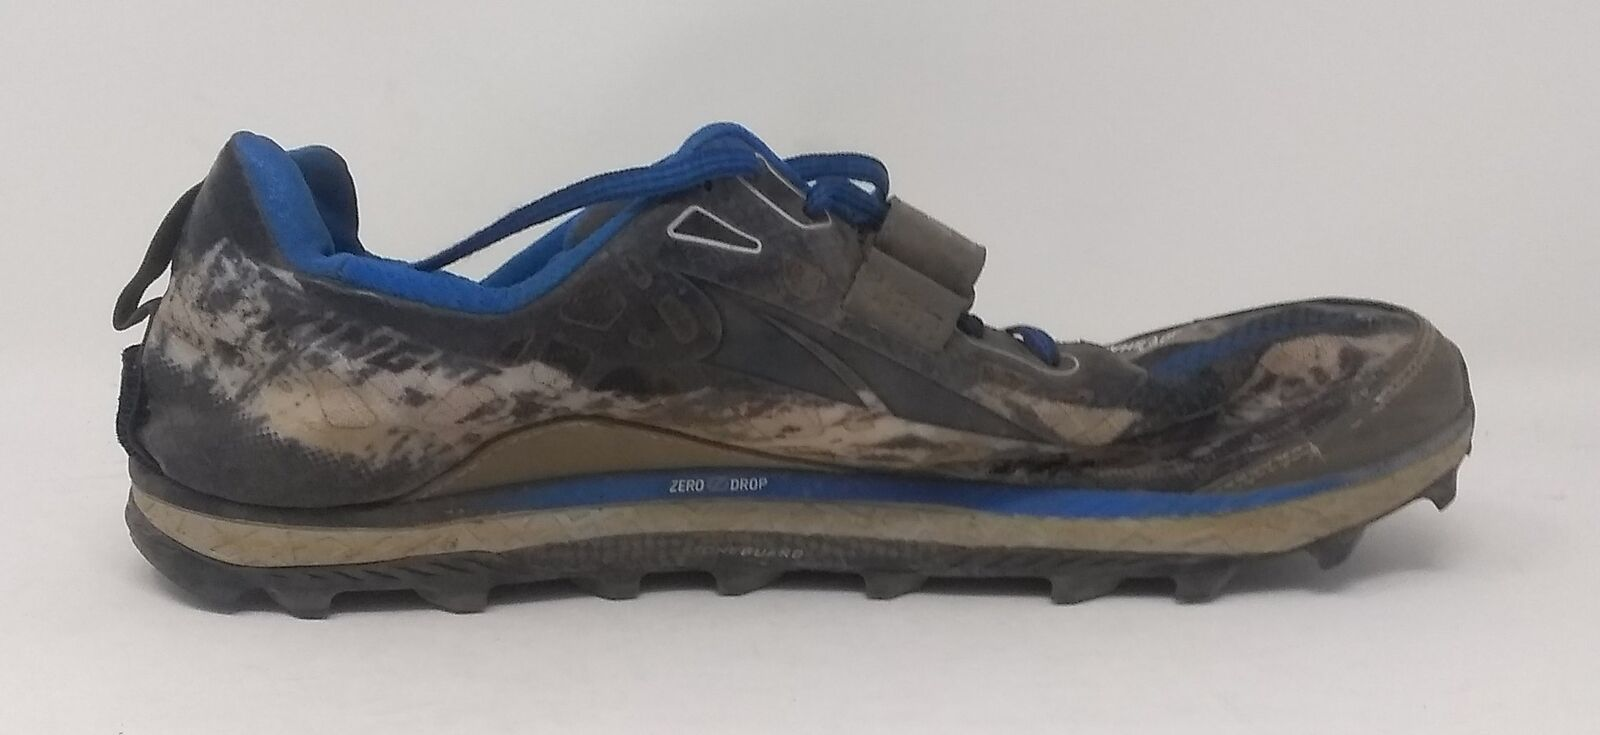 Altra Footwear Mens King MT Trail Running shoes,blueee,US 11.5 D - USED